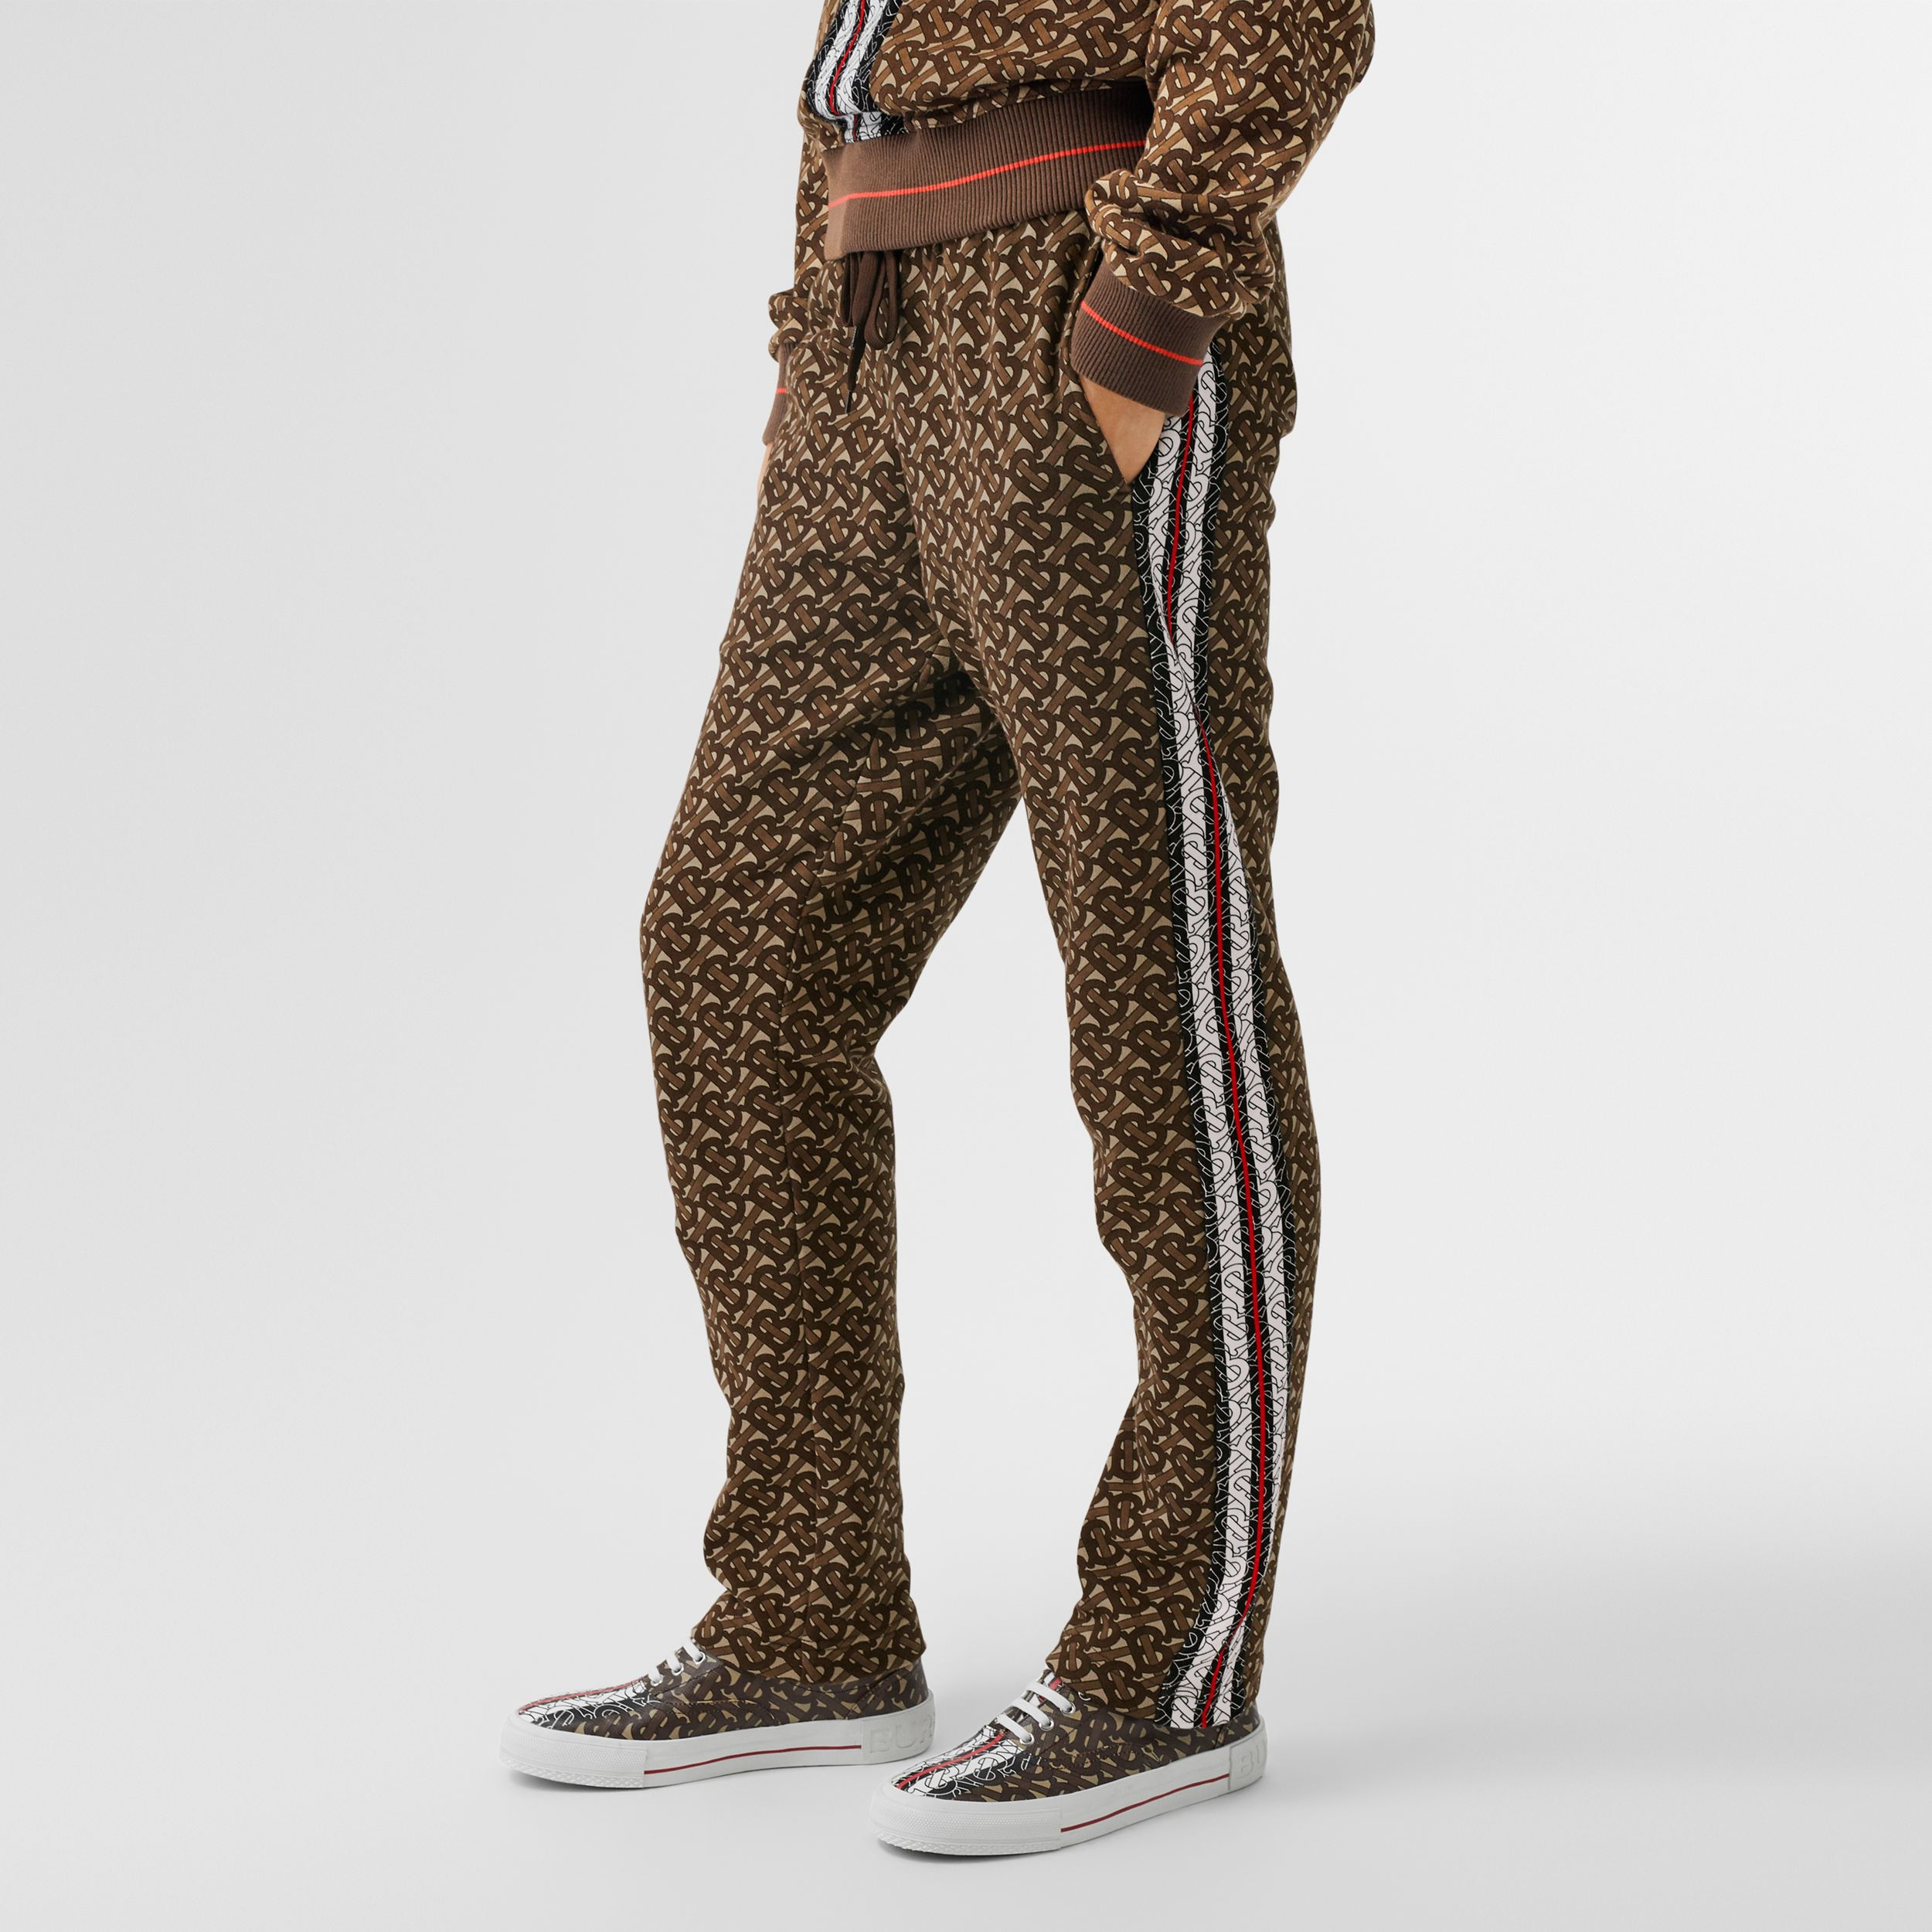 Monogram Stripe Print Cotton Jogging Pants in Bridle Brown - Women | Burberry Australia - 1